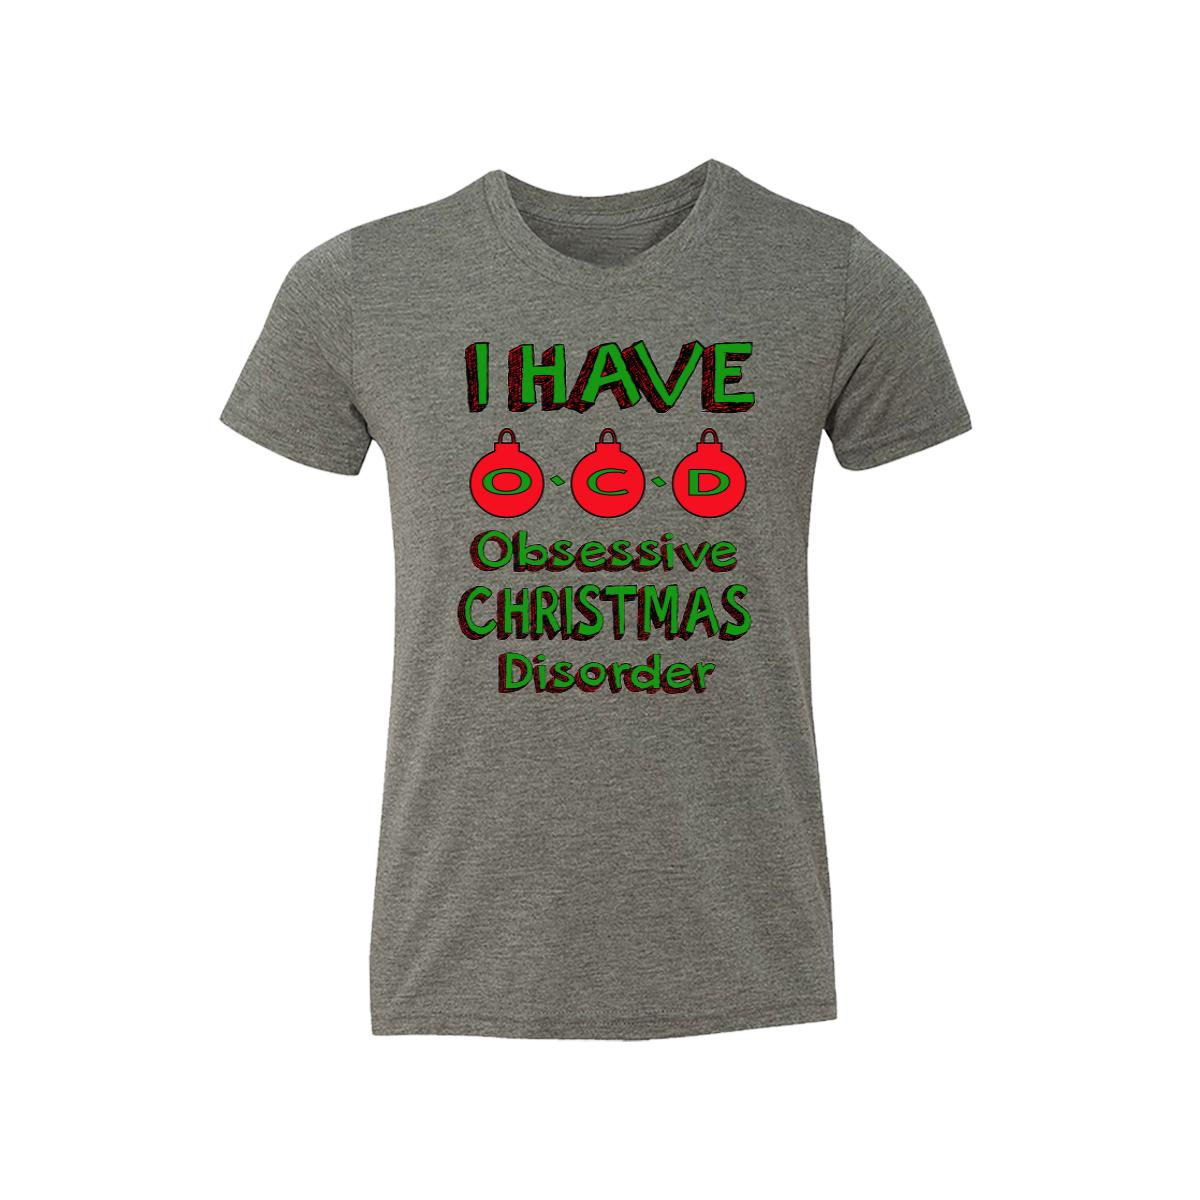 I Have O.C.D. Obsessive Christmas Disorder Kids Tee Shirt - Moment Gear